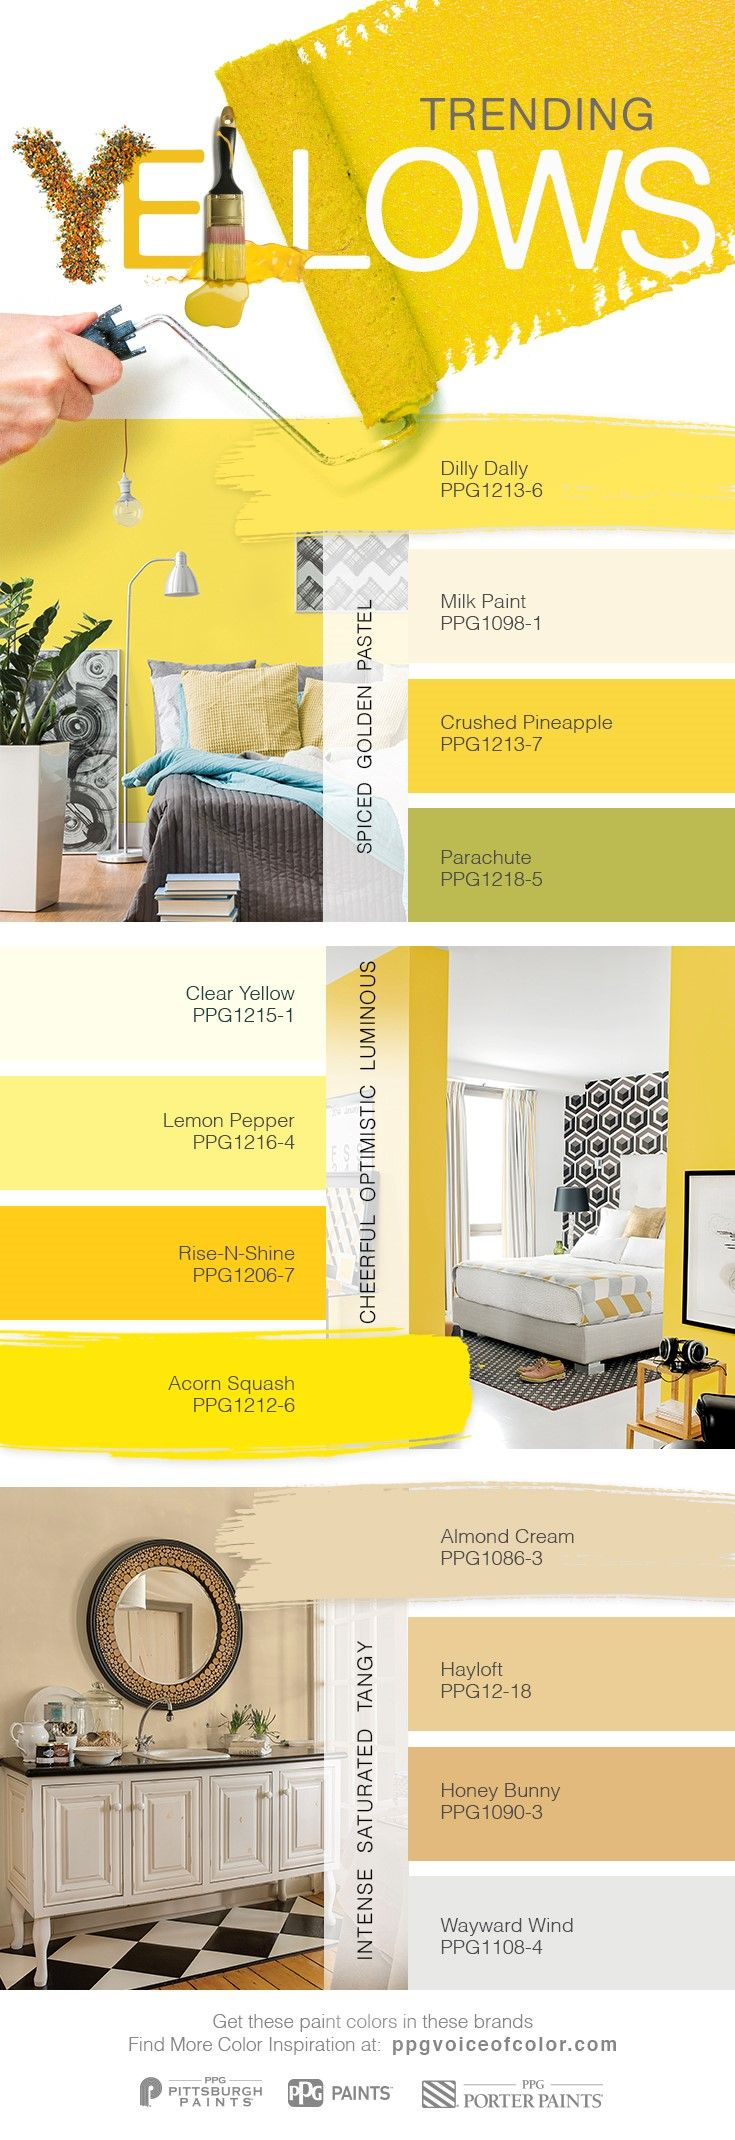 25 best yellow paint colors ideas on pinterest yellow kitchen walls yellow walls and light. Black Bedroom Furniture Sets. Home Design Ideas